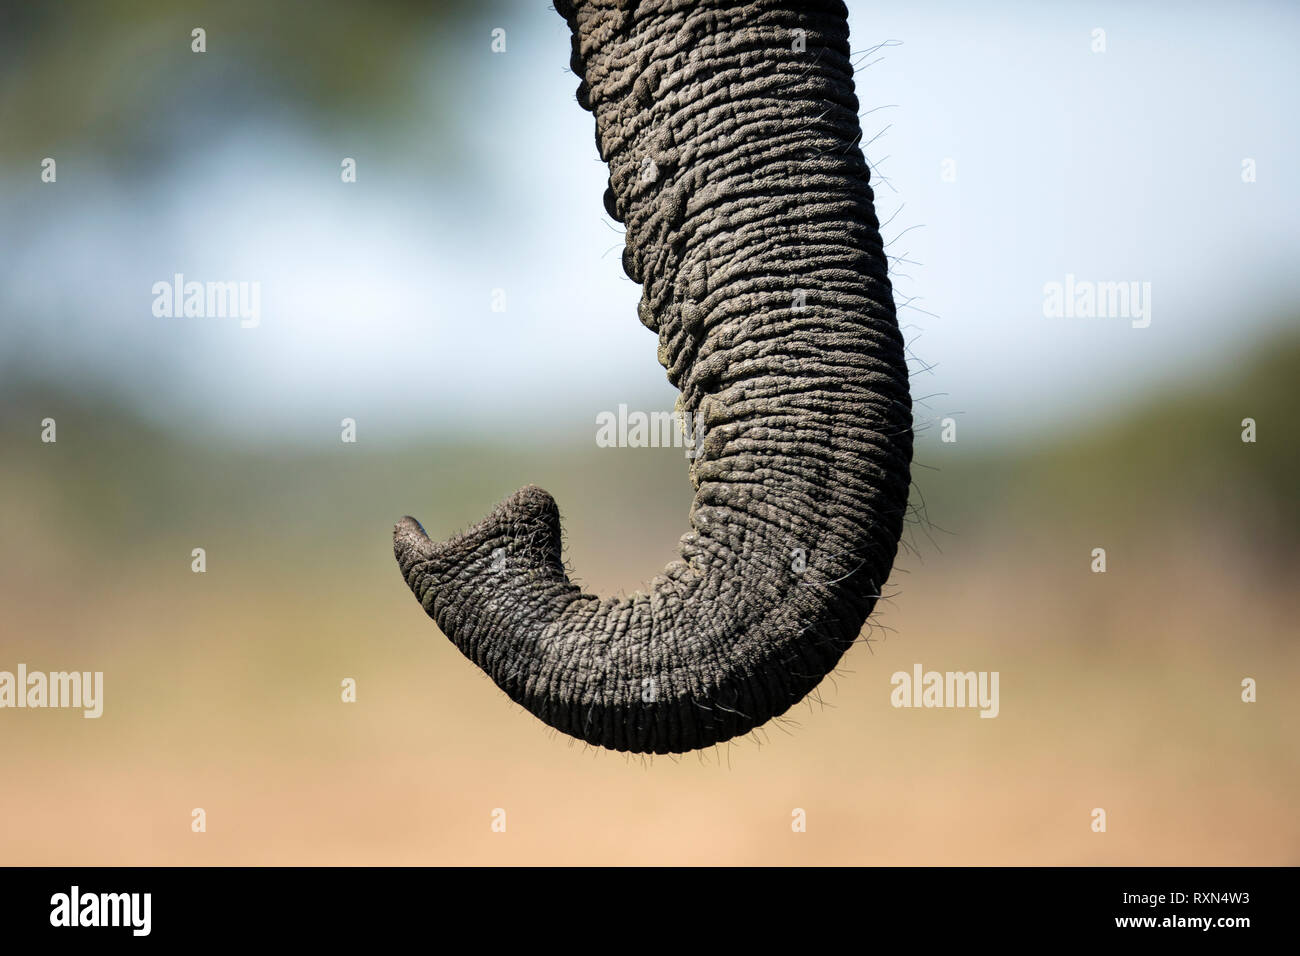 A close up detail of an elephant in Chobe National Park, Botswana. - Stock Image